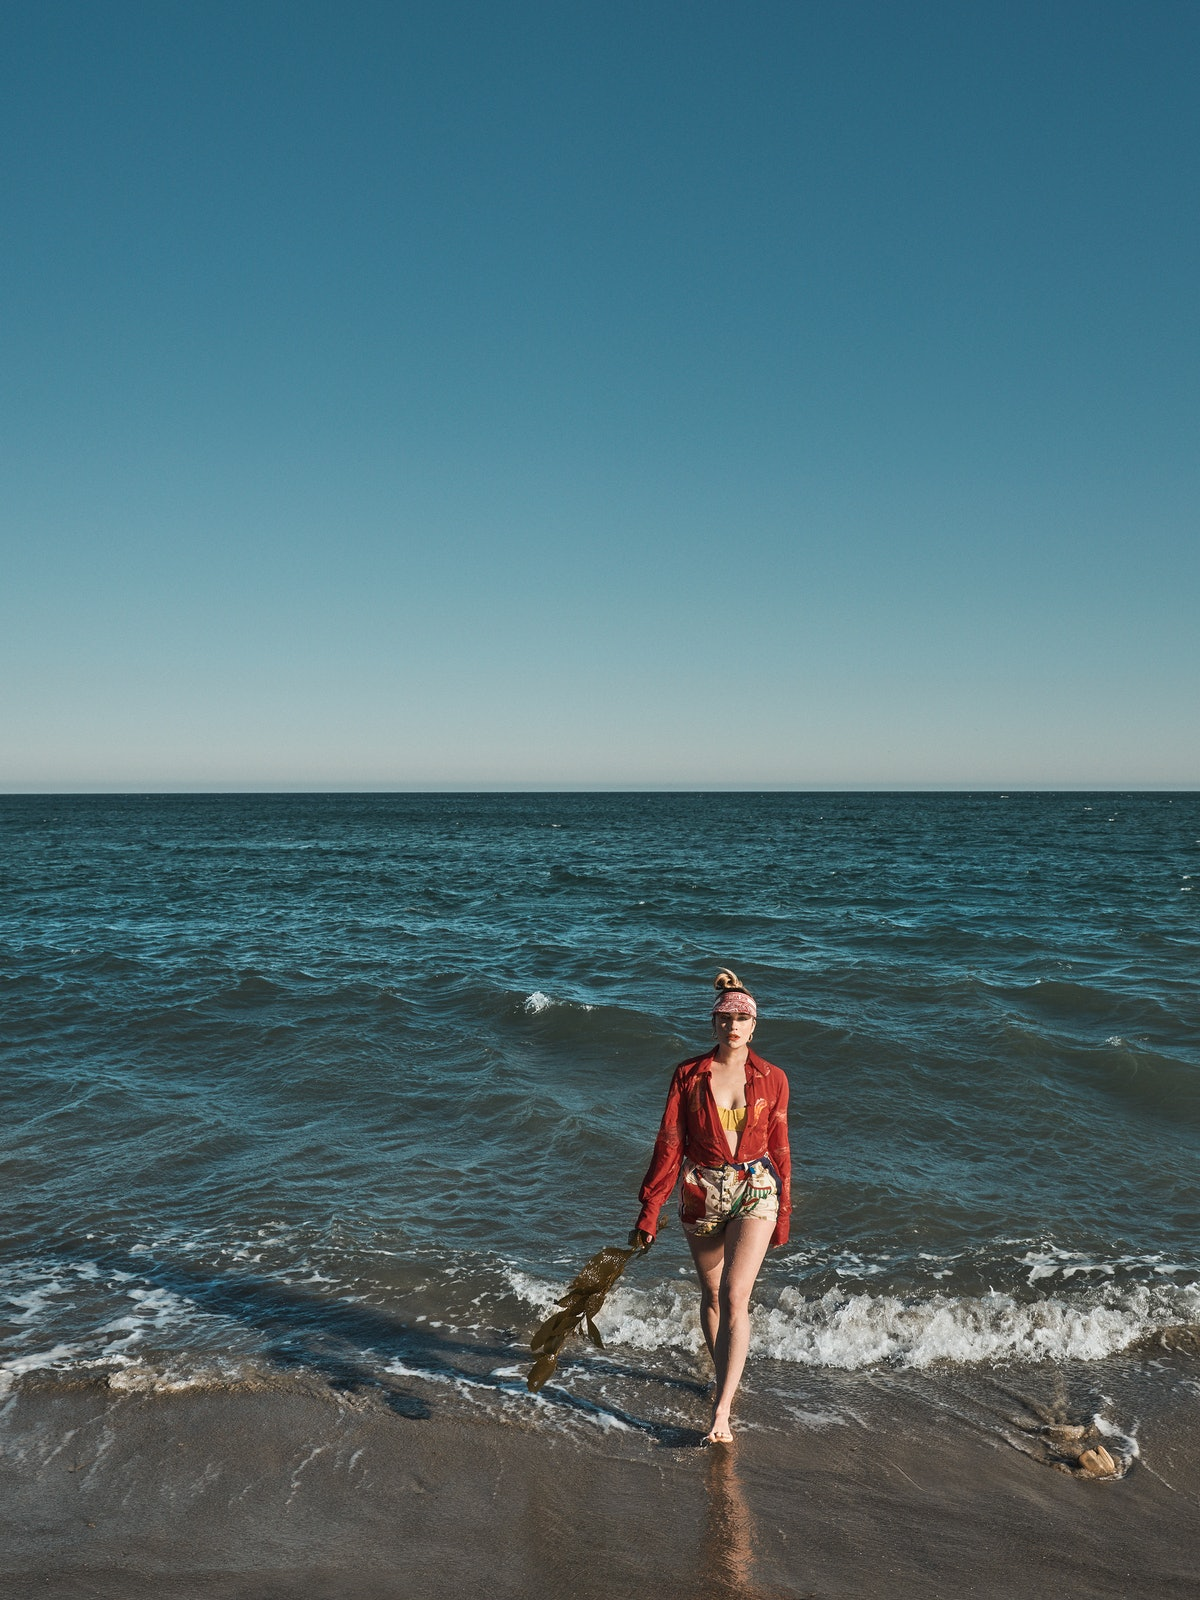 Annie Murphy, star of 'Schitt's Creek' & 'Kevin Can F*ck Himself,' stands in the water at the beach ...